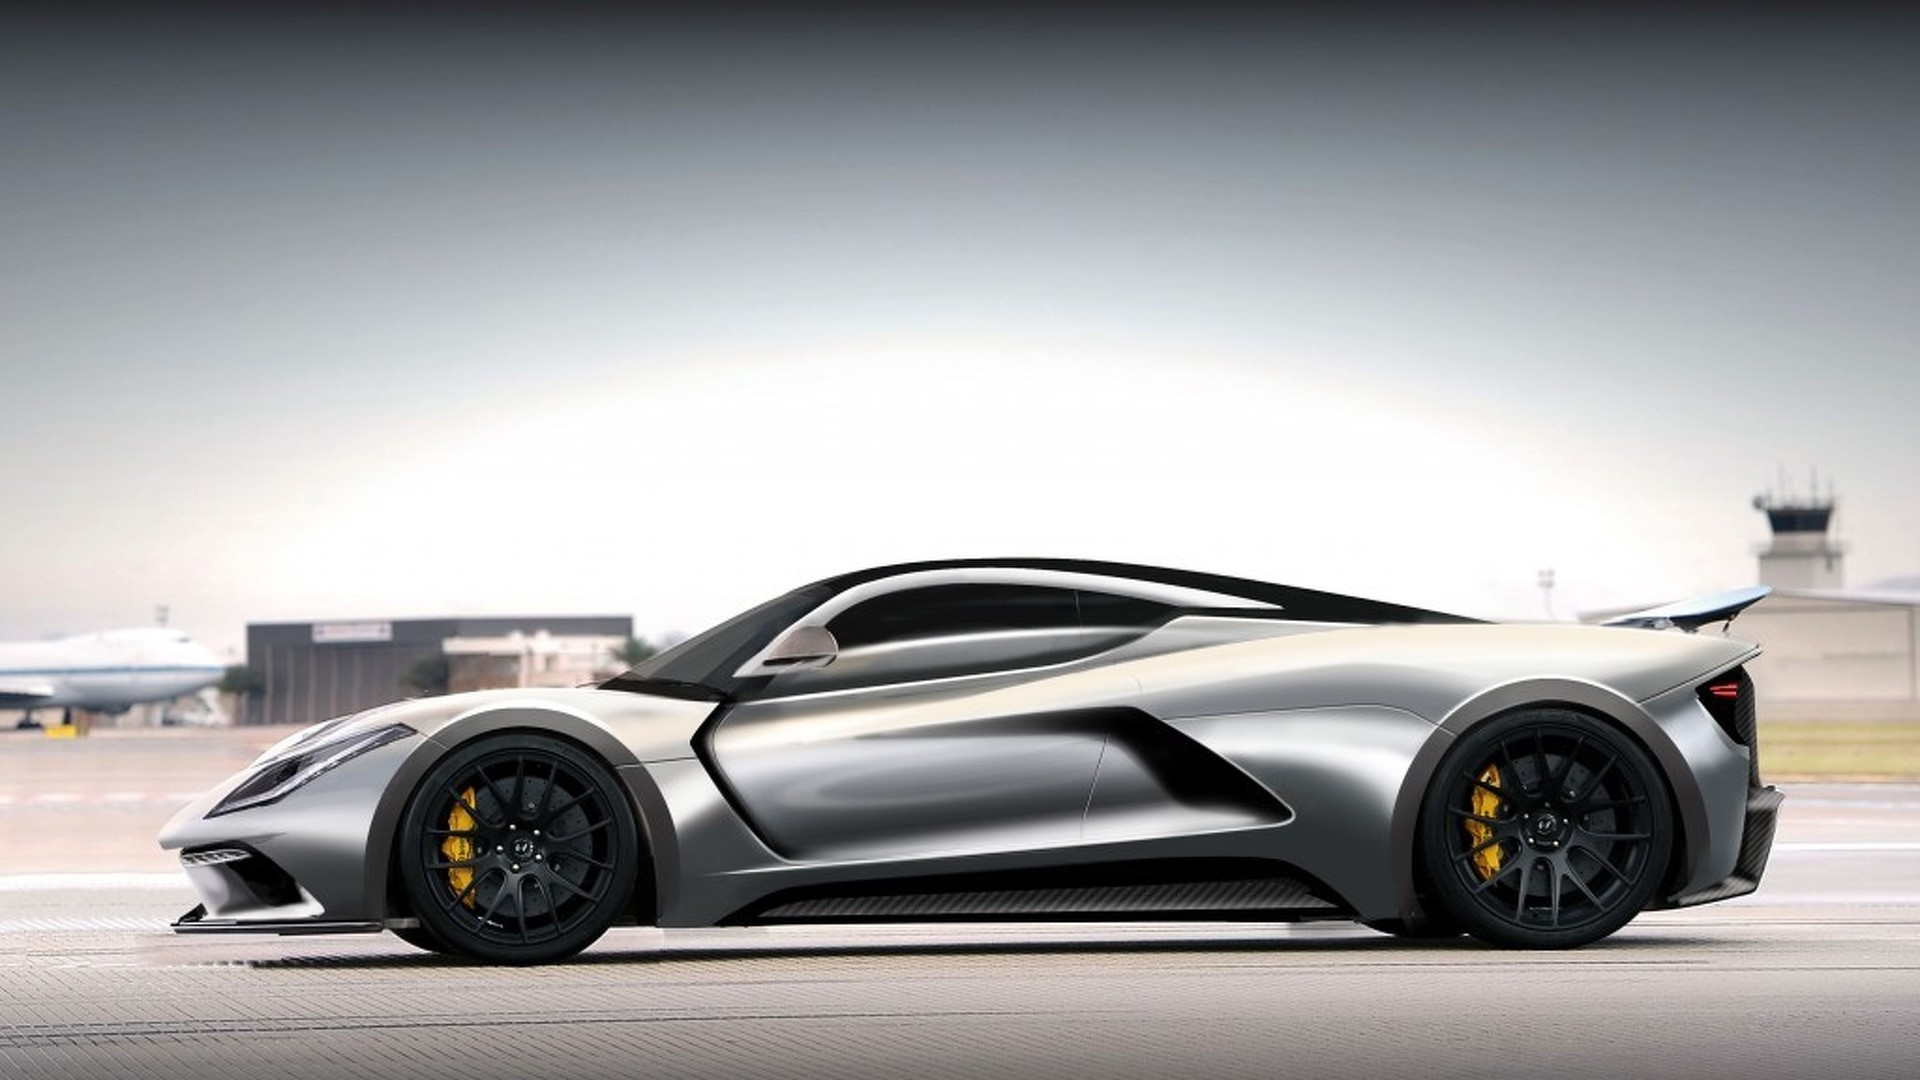 Hennessey Venom F5 Top Speed Likely To Surpass 300 MPH - autoevolution